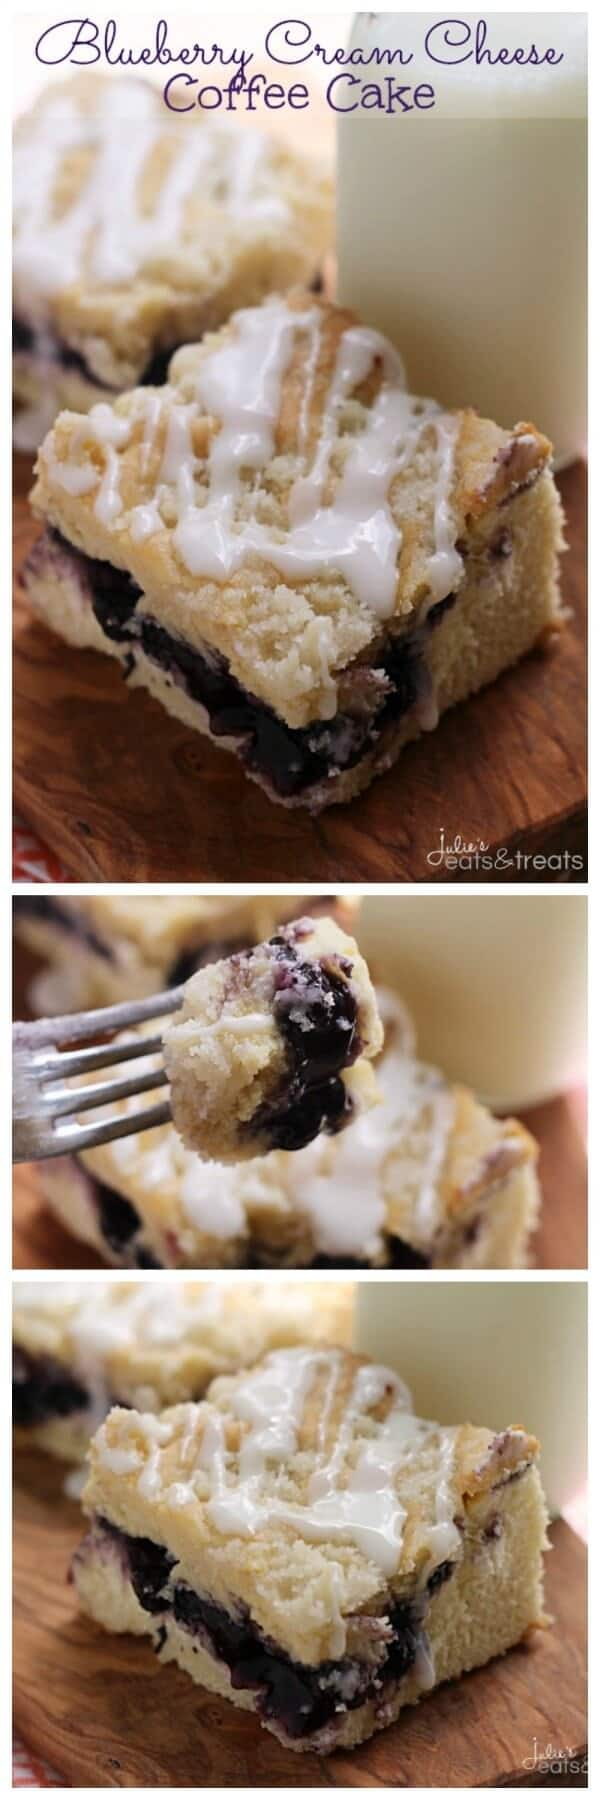 Blueberry Cream Cheese Coffee Cake ~ Delicious Coffee Cake Stuffed ...